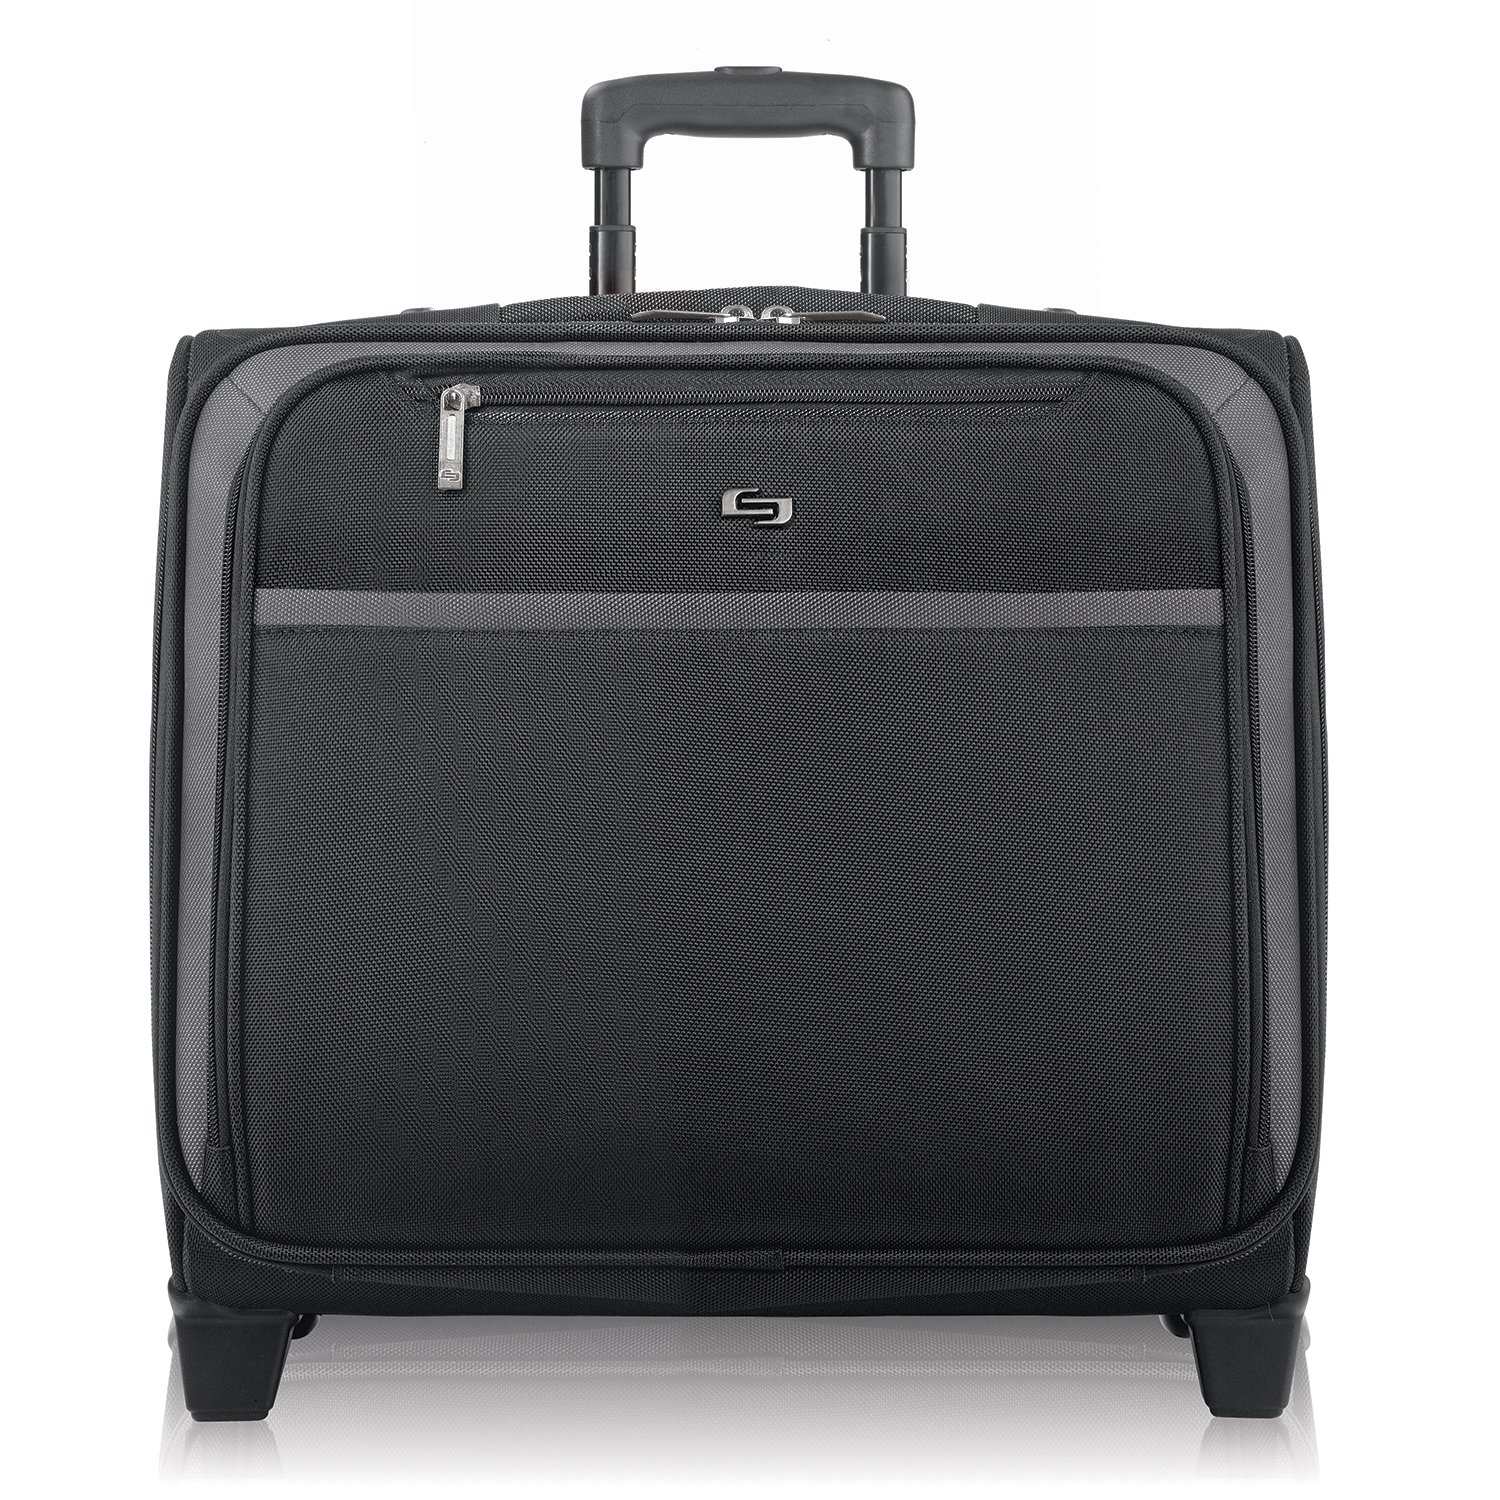 Solo Dakota 16 Inch Rolling Laptop Case with Overnighter Section, Black CLA901-4